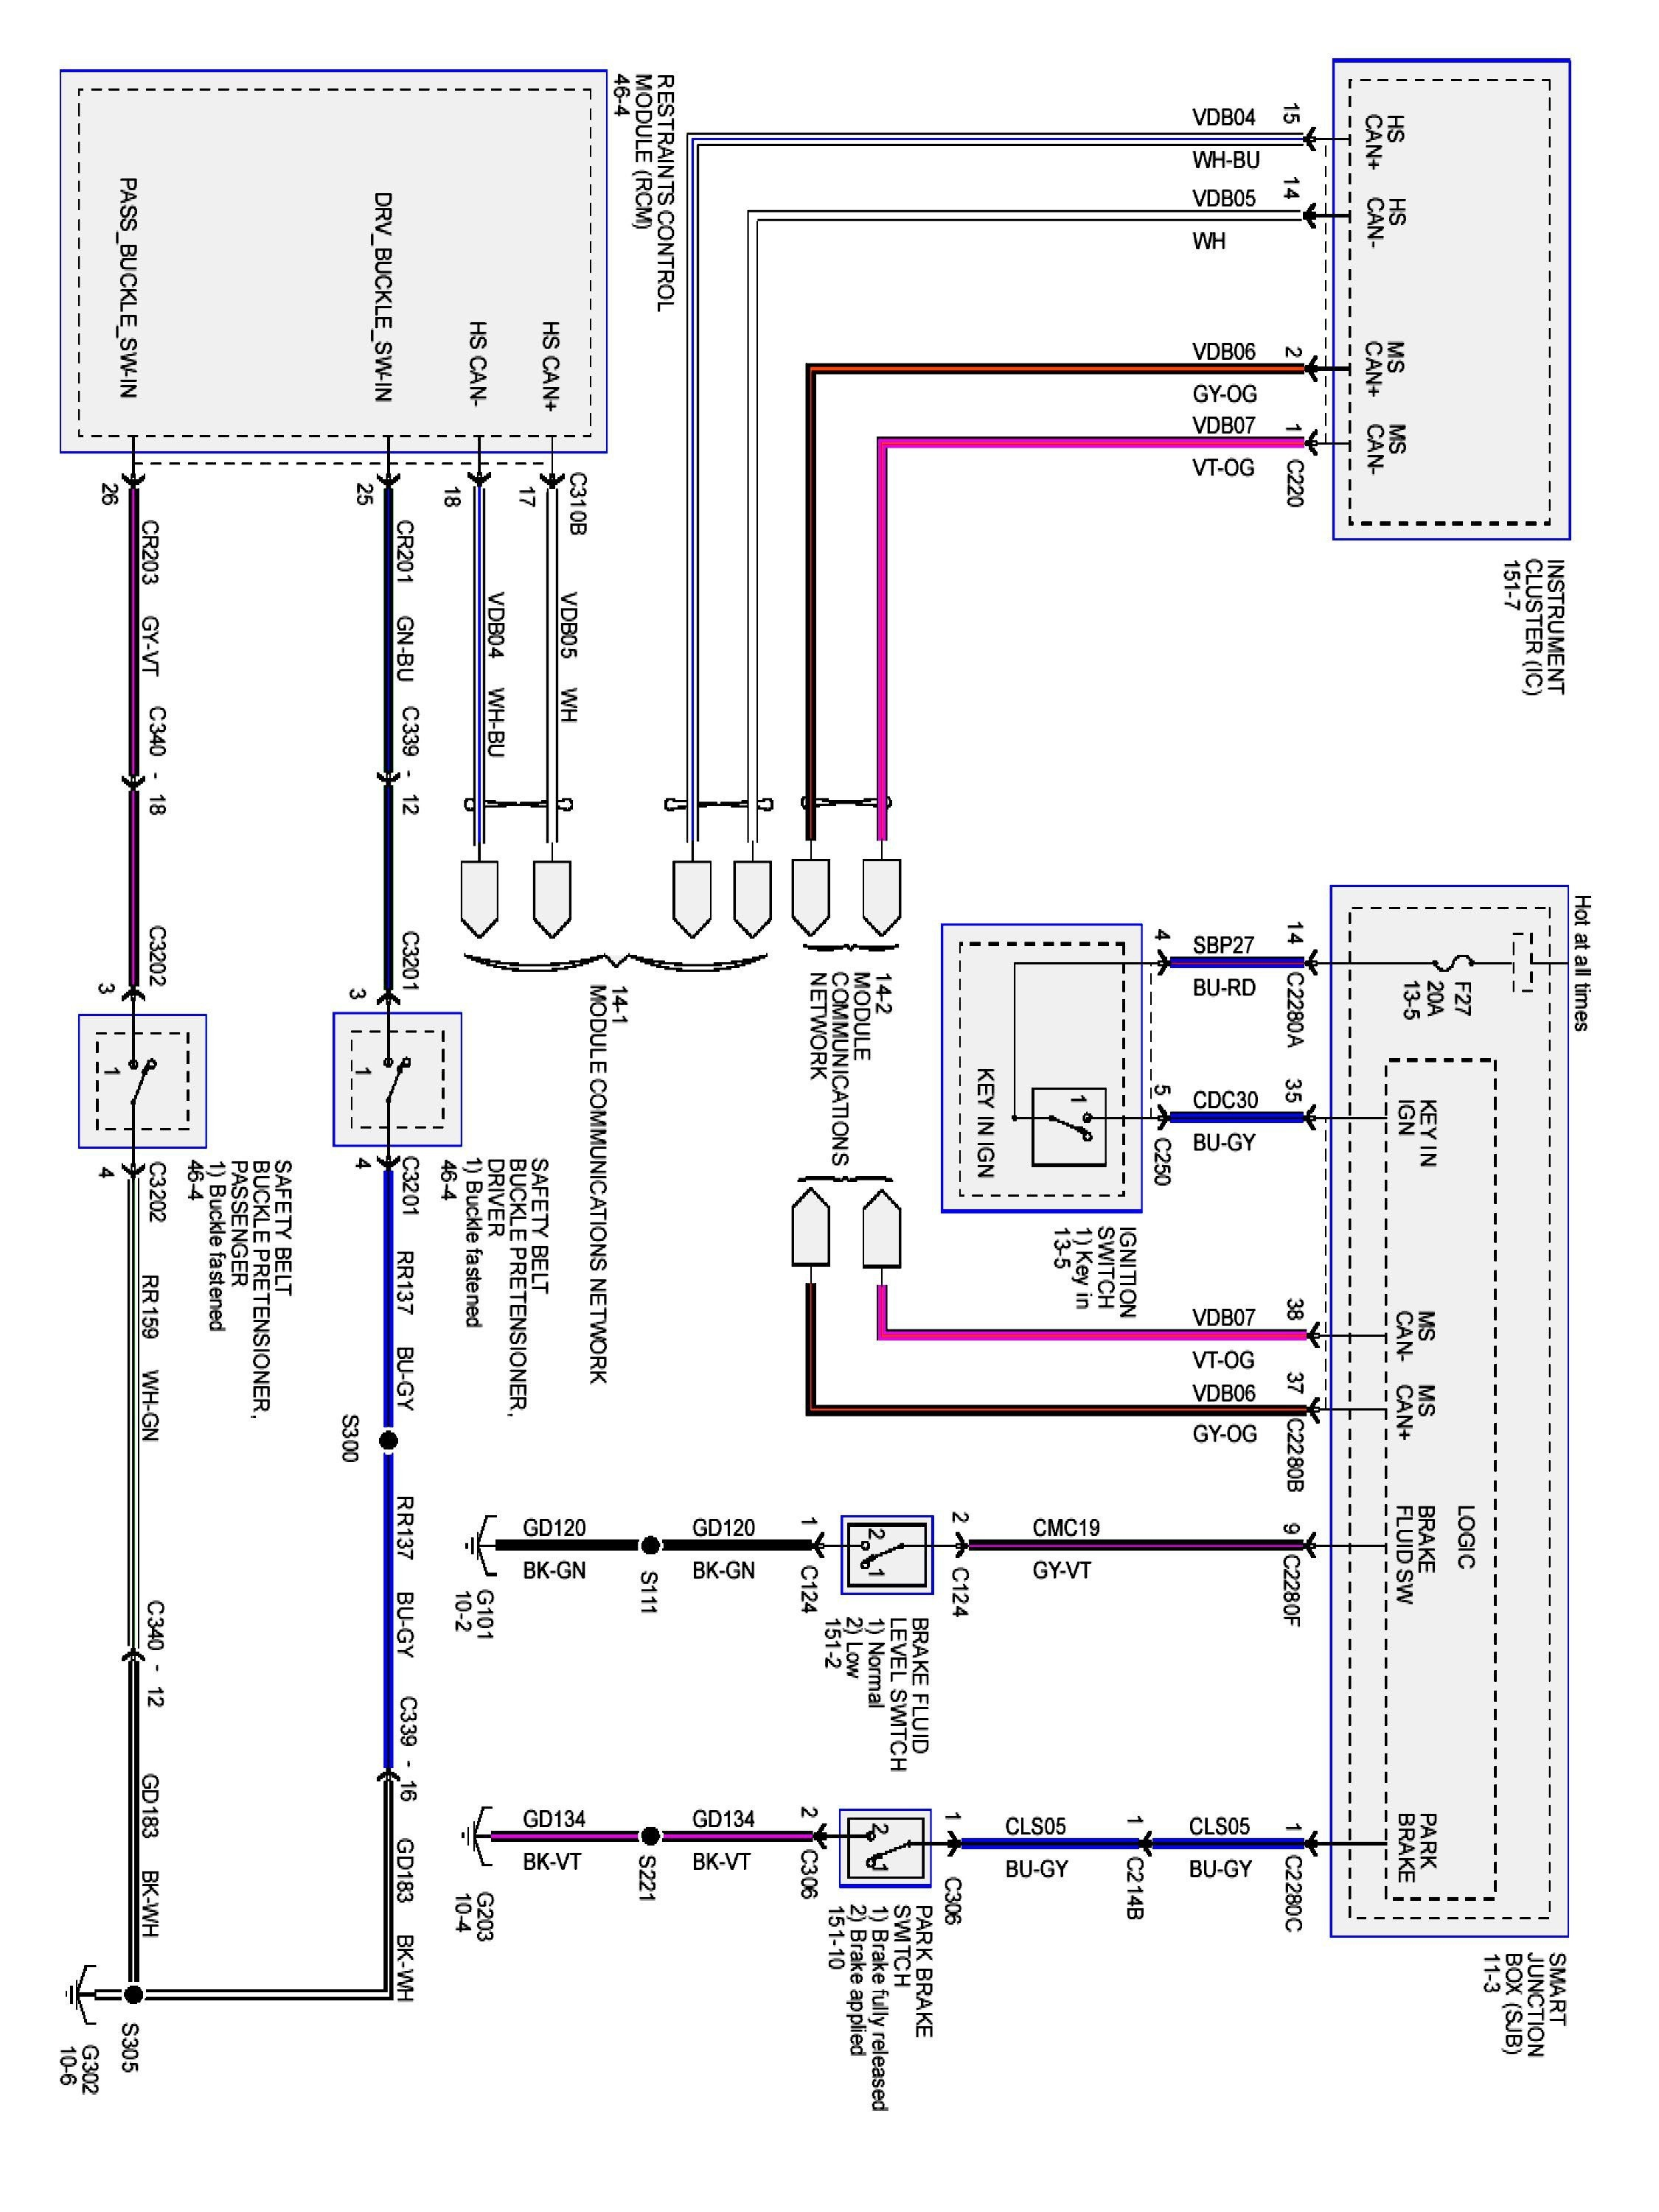 Brake Lights Wiring Diagram Elegant Brake Light Wiring Diagram Diagram Of Brake Lights Wiring Diagram